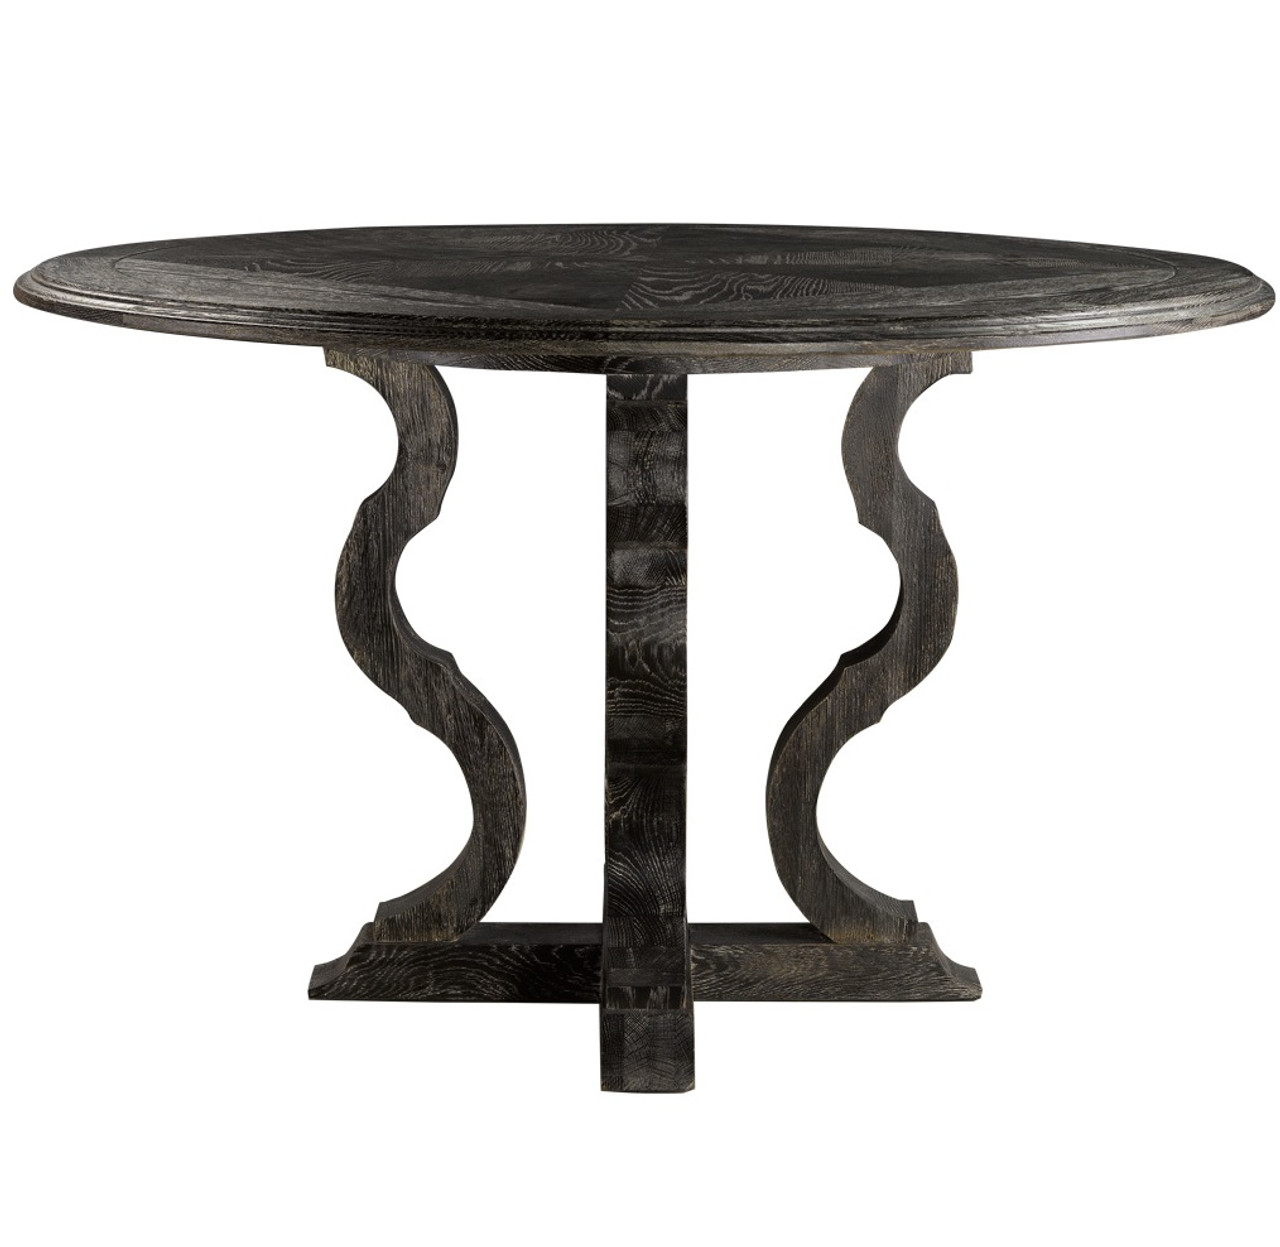 French Antique Black Round Pedestal Dining Table 50 Quot Zin